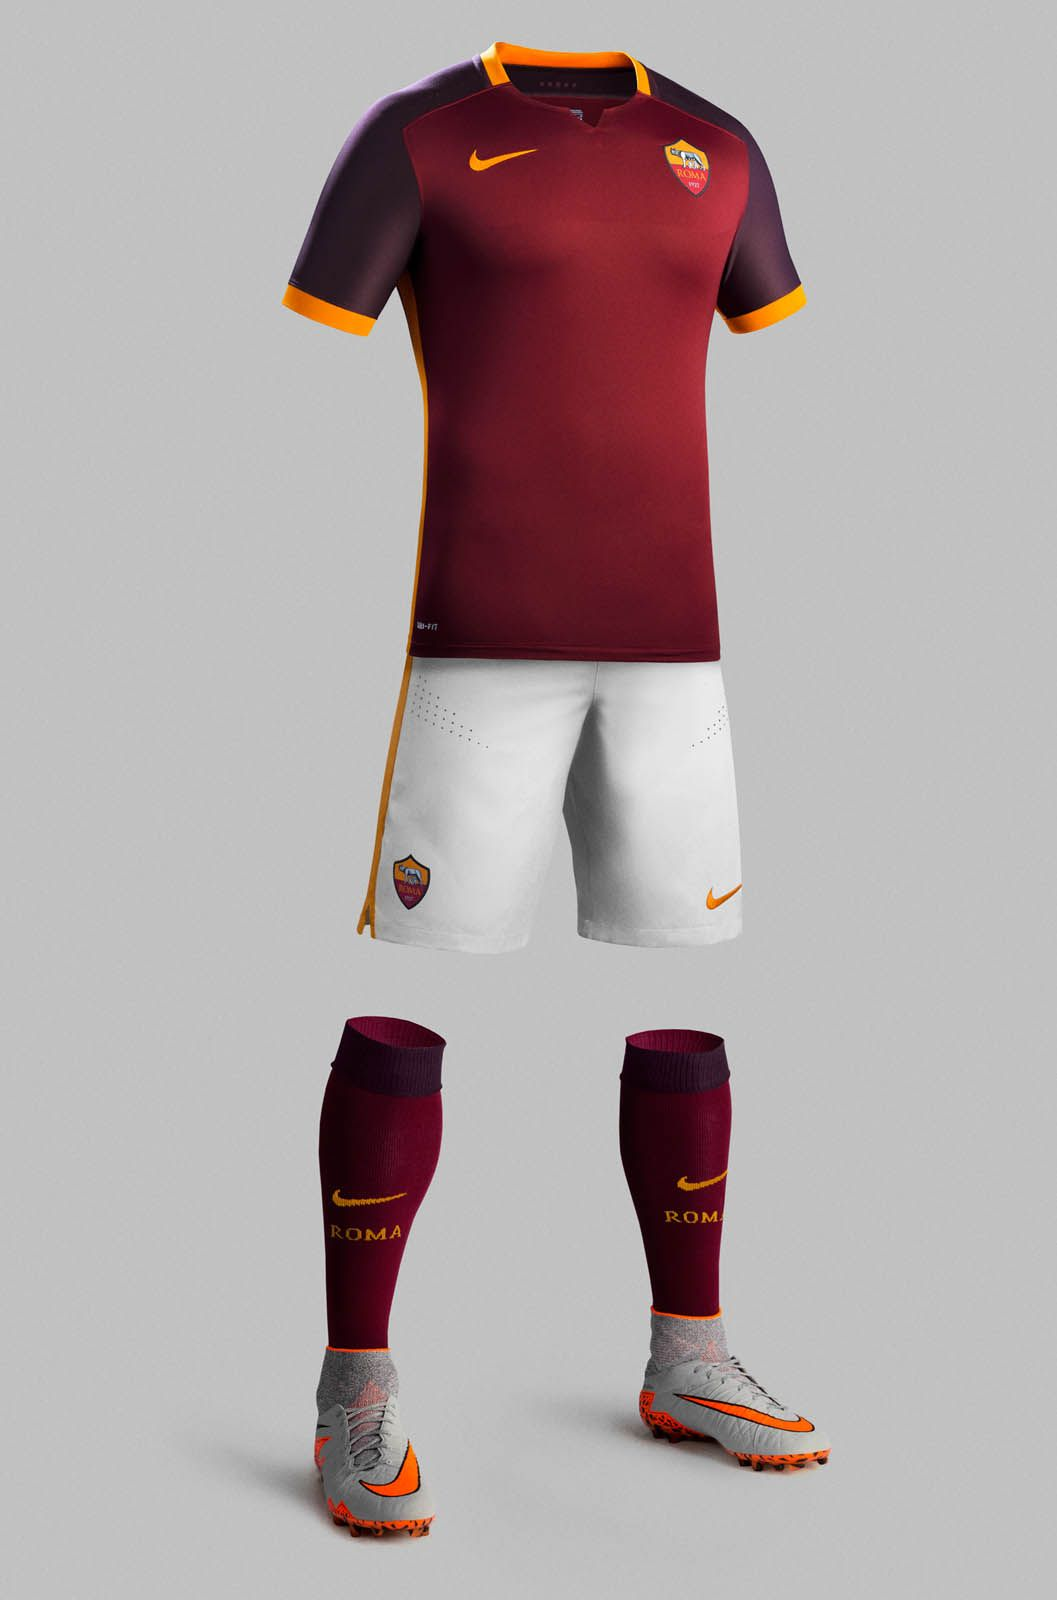 AS Roma 15-16 Kits Revealed - Footy Headlines  21e88b3bb